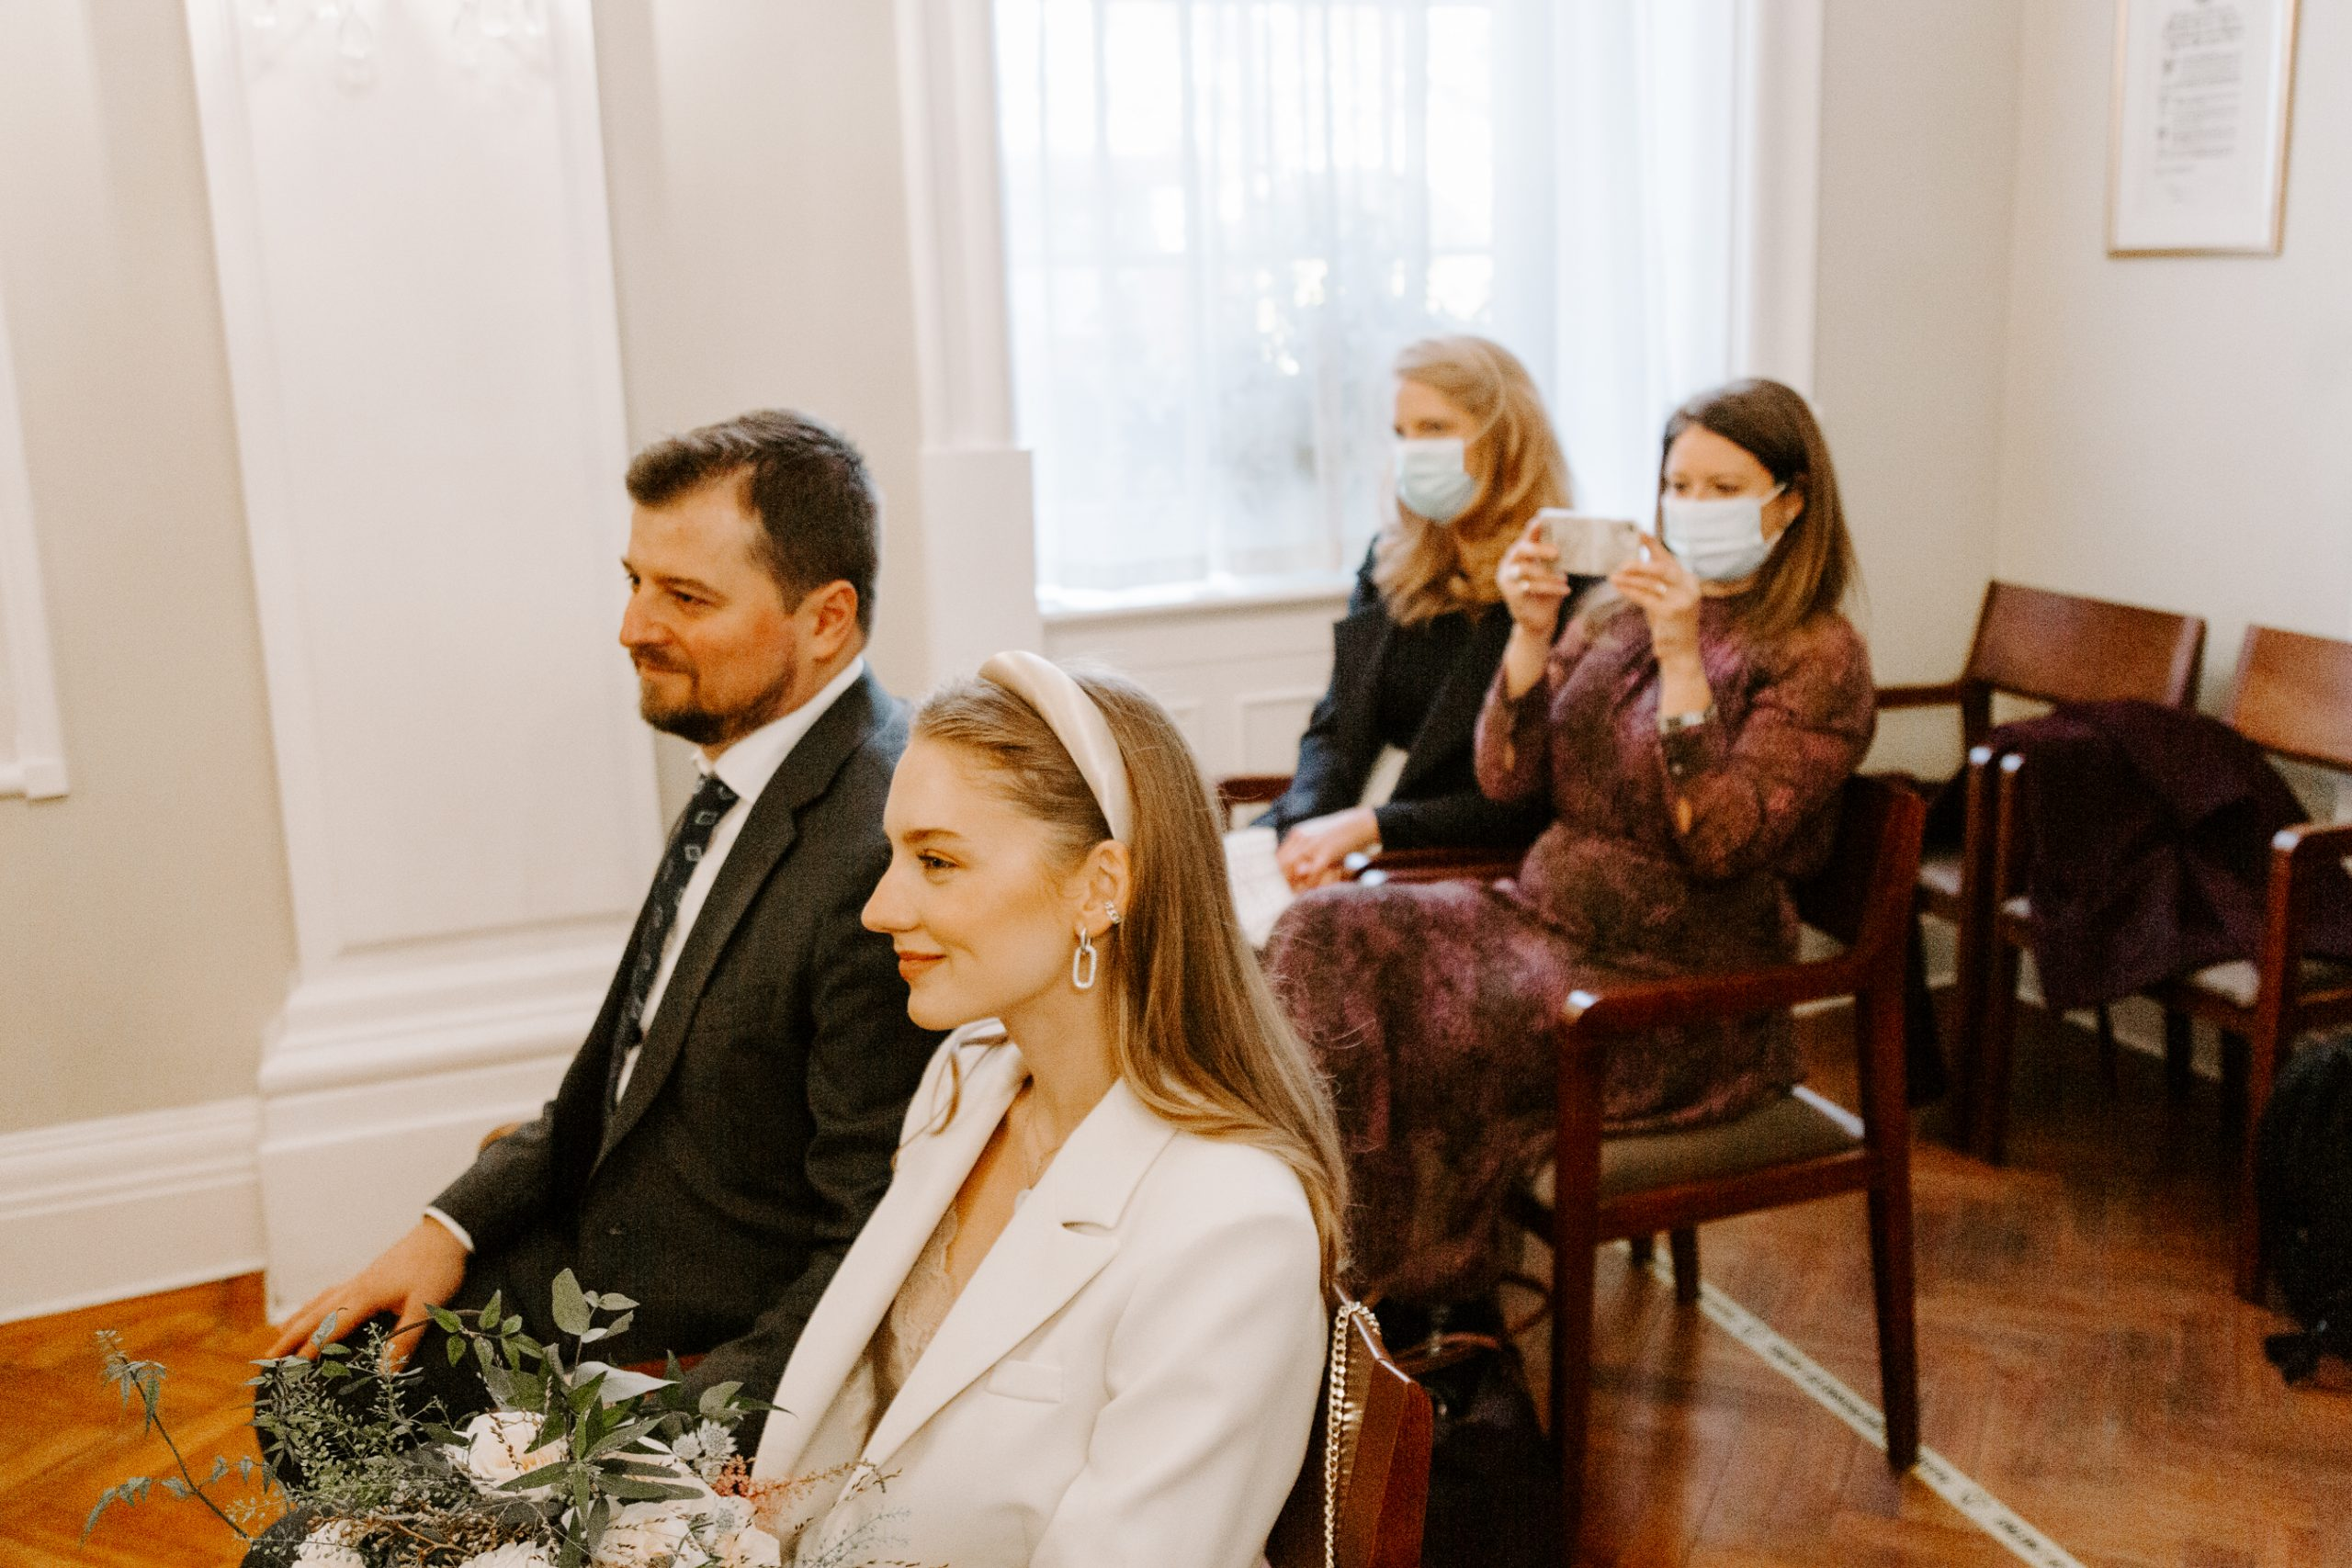 Chelsea Town Hall wedding ceremony during COVID